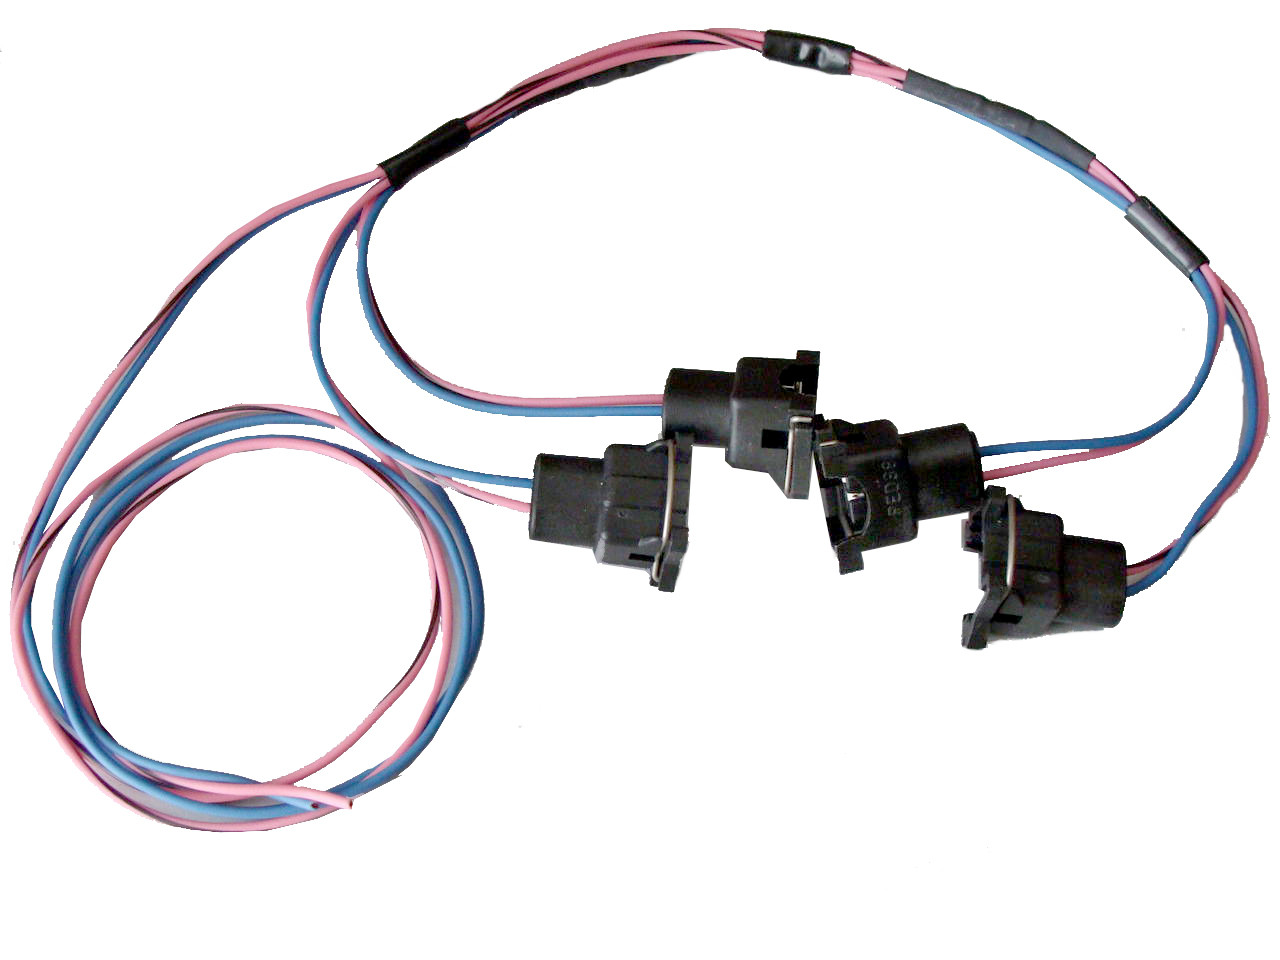 Wiring Harness Lt1 Automatic Opinions About Diagram Exploded View 85 95 Tpi Fuel Injector Connector Assembly Rh Hawksmotorsports Com Wire Camaro Z28